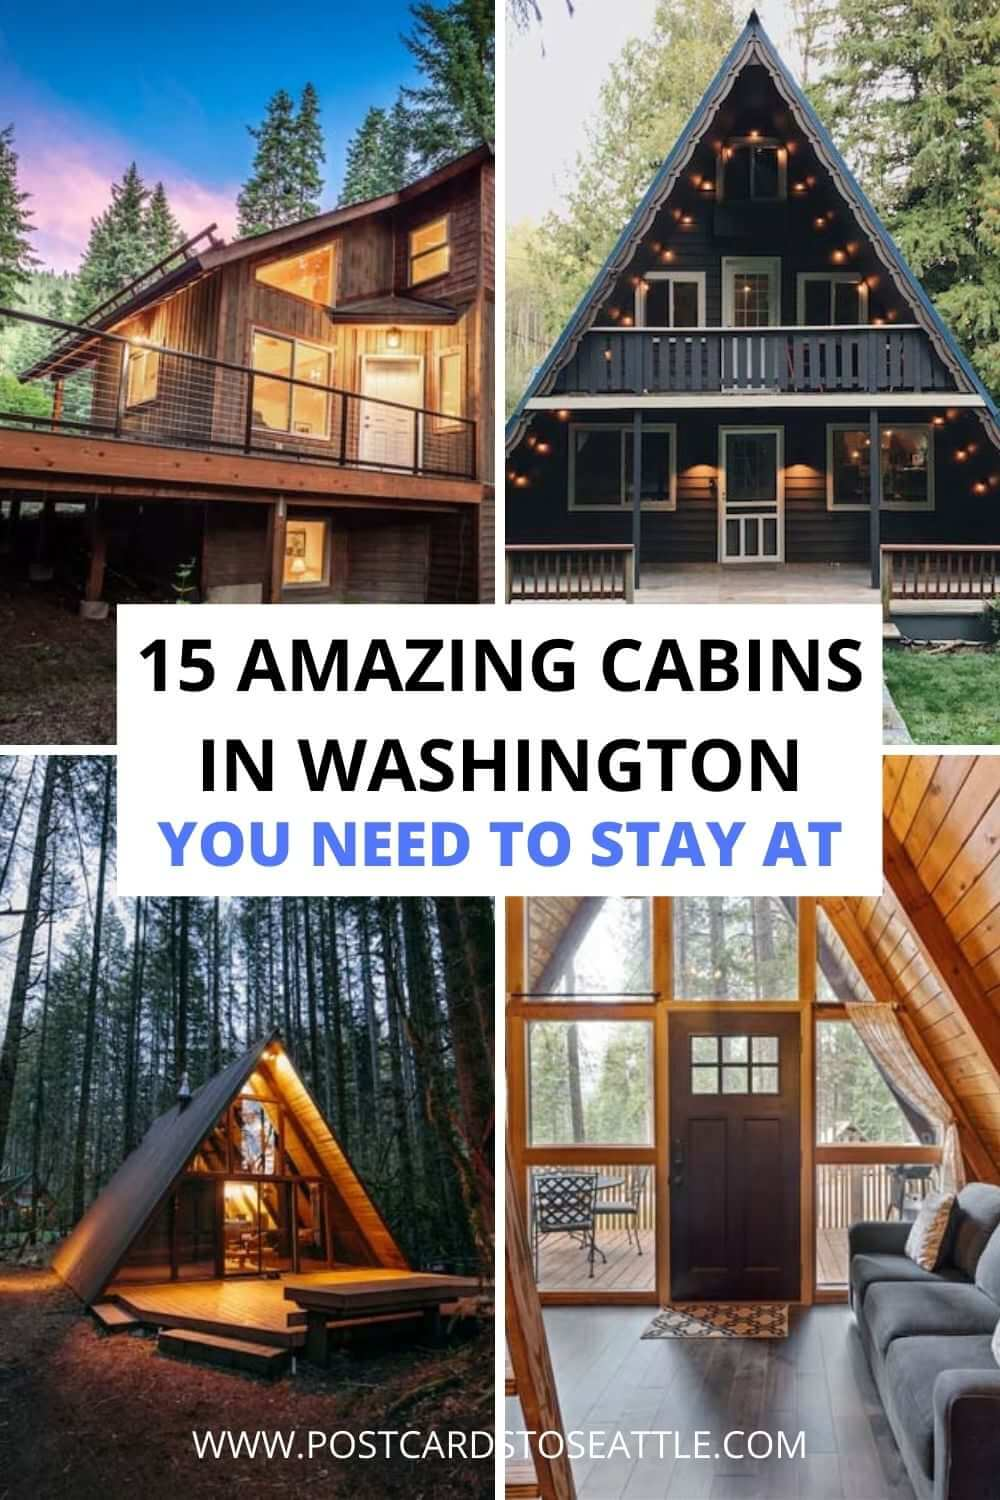 16 Stunning Treehouses and Cabins in Washington You Need to Book